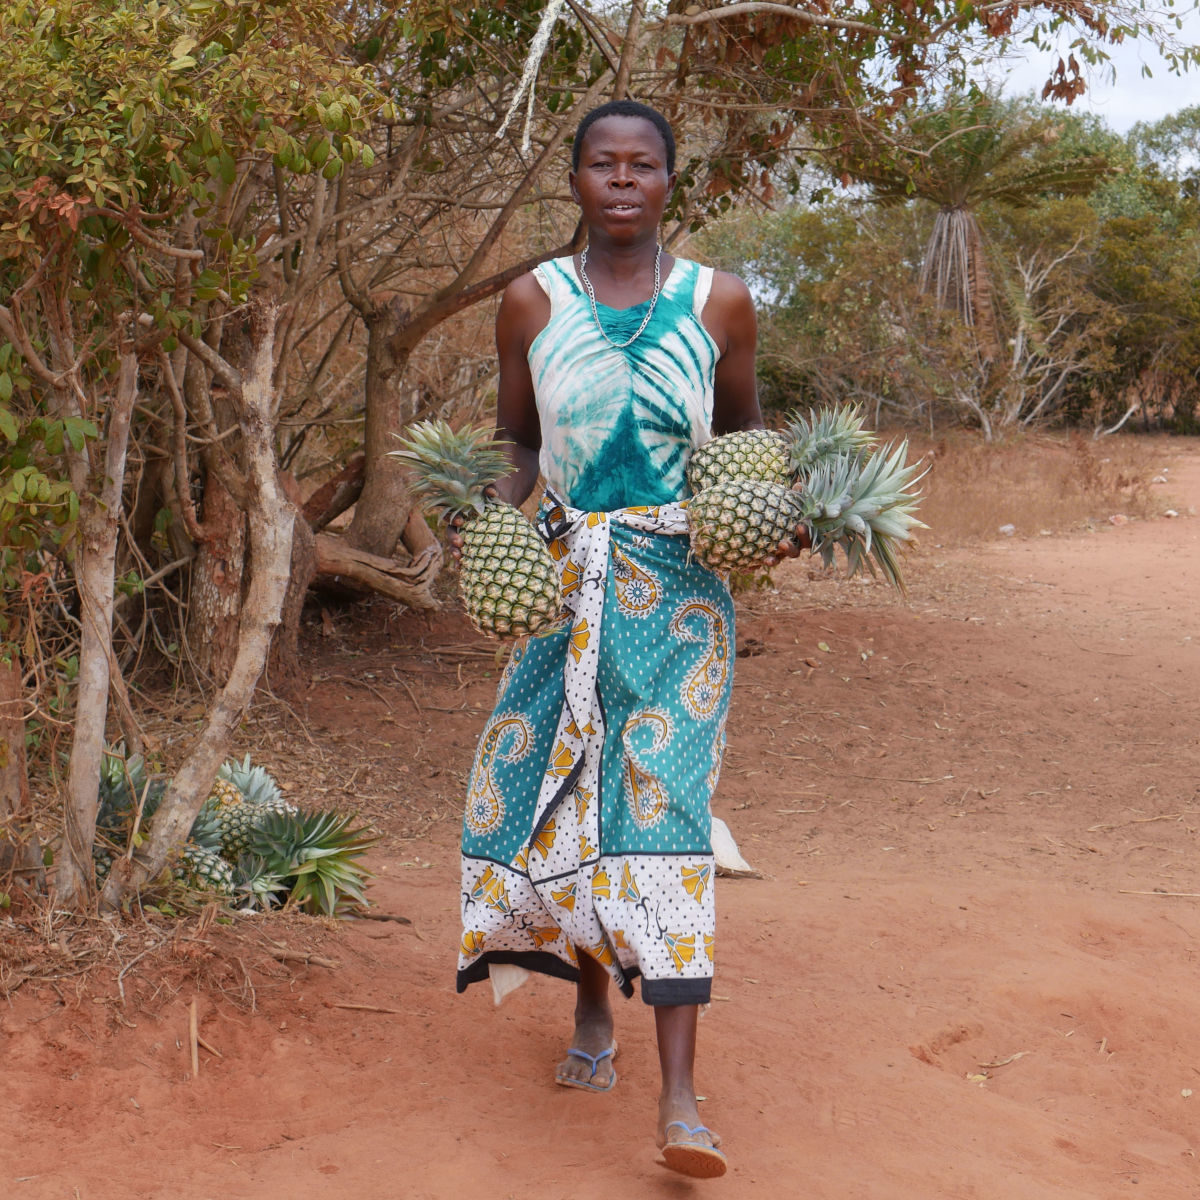 Woman carrying pineapples to sell